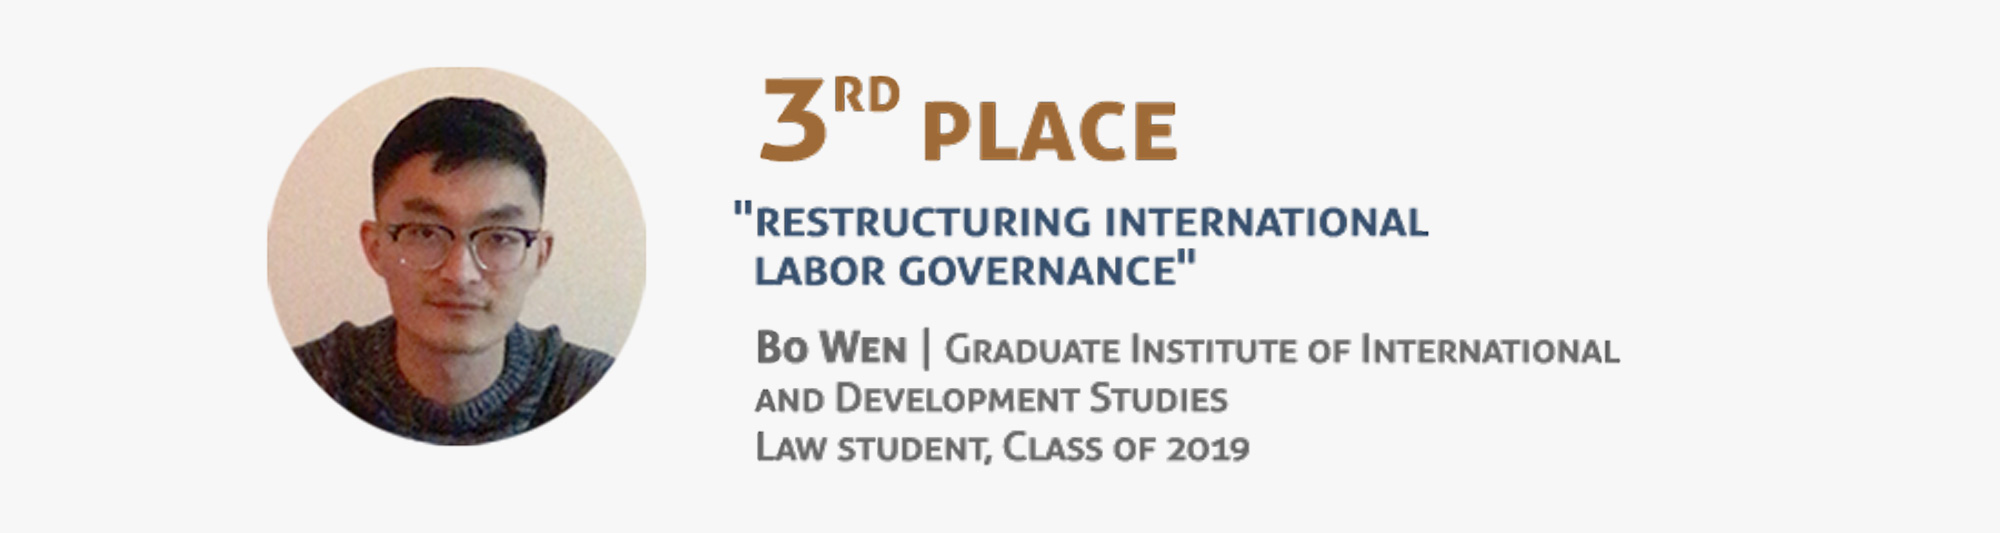 Third place - Bo Wen - Graduate Institute of International and Development Studies